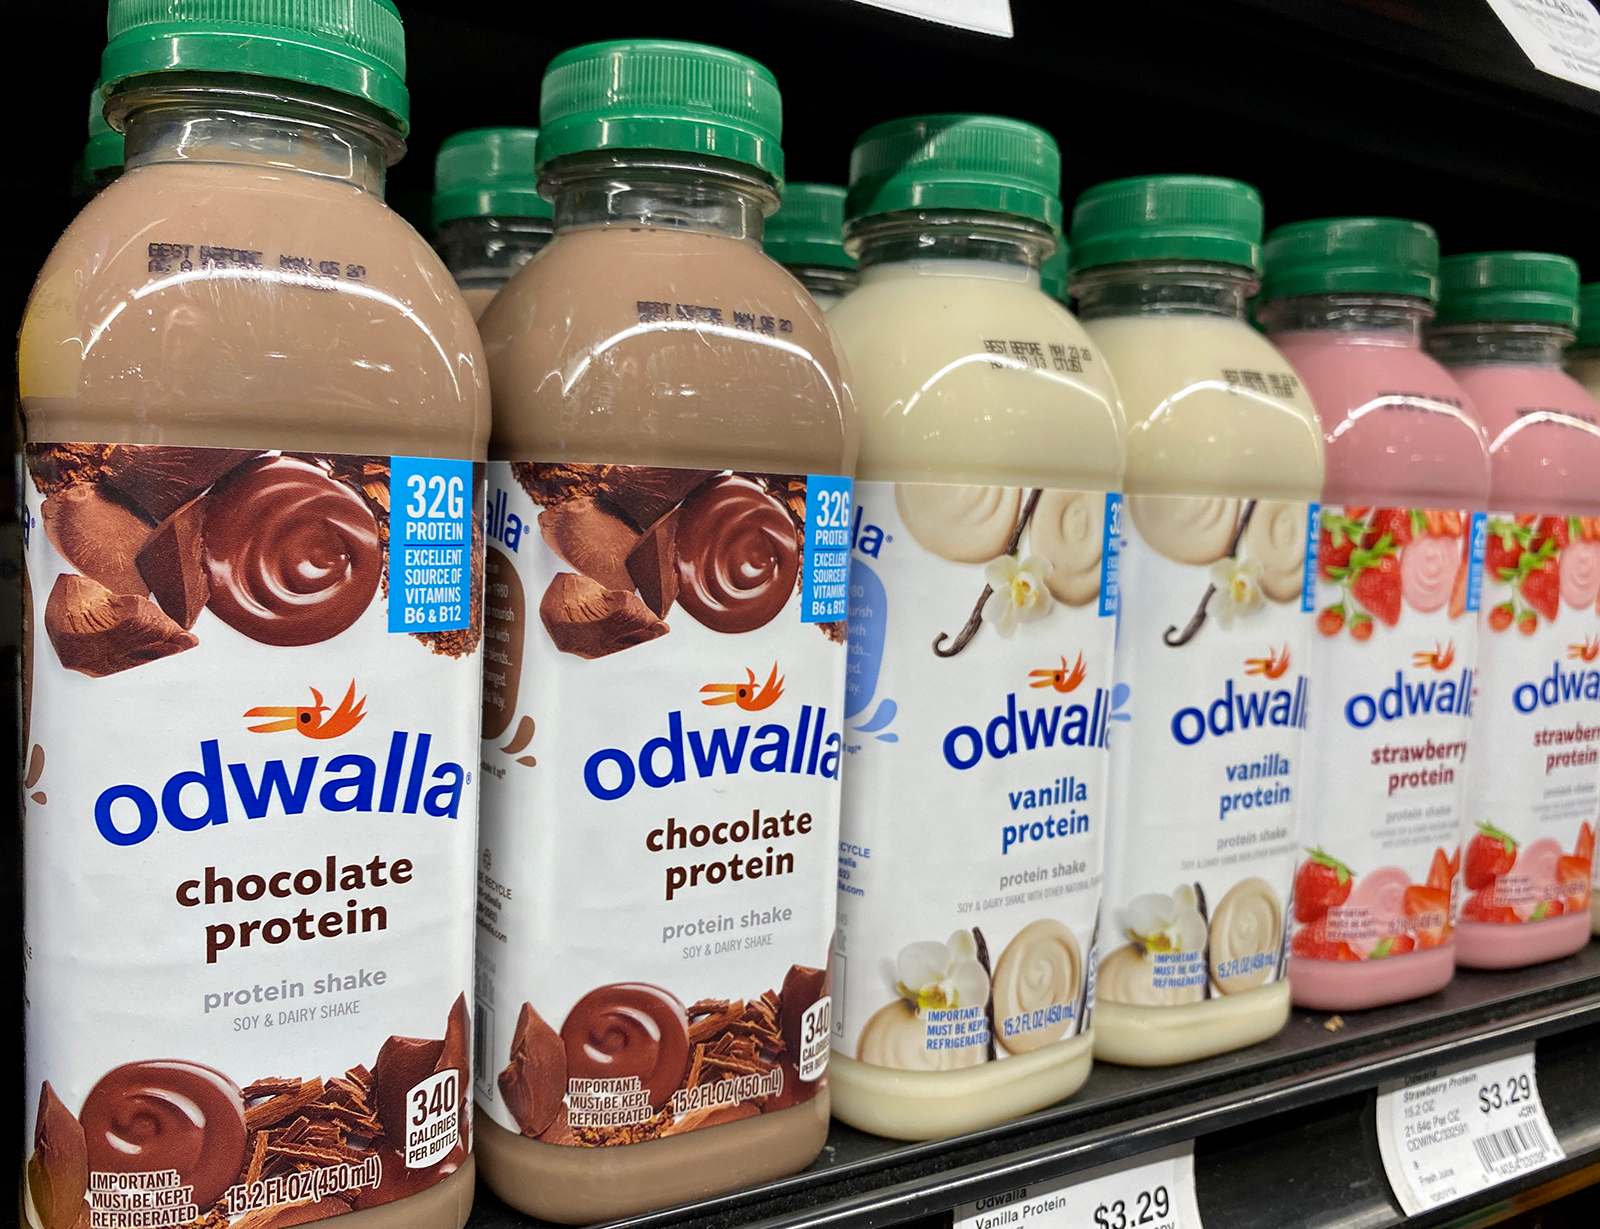 Bottles of Odwalla protein shakes sit on a grocery store shelf.